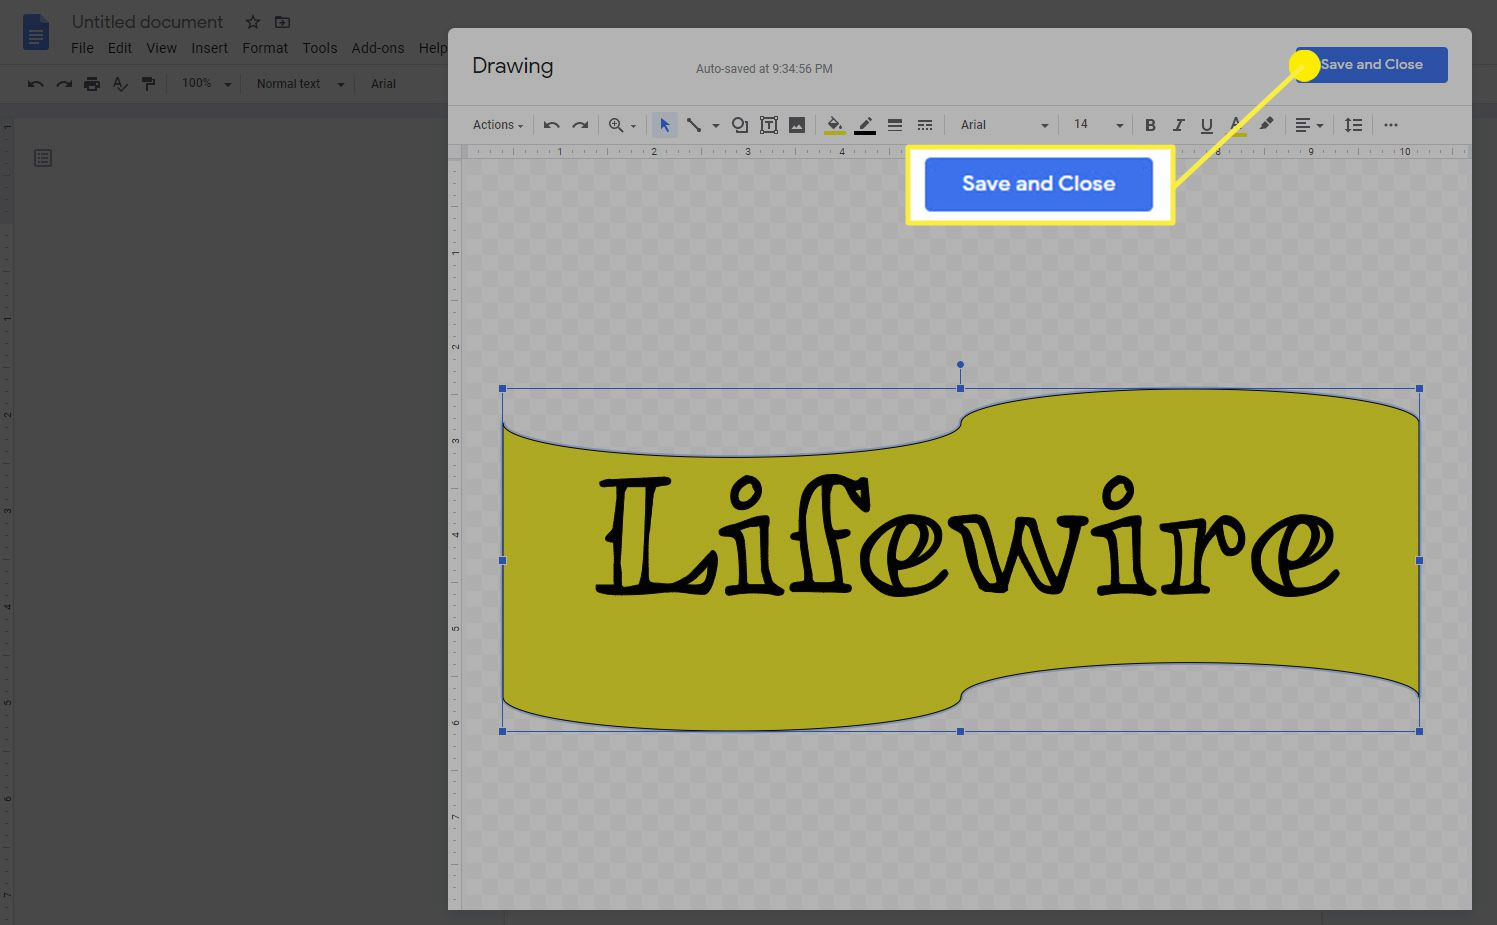 The Save and close option for drawings in Google Docs.